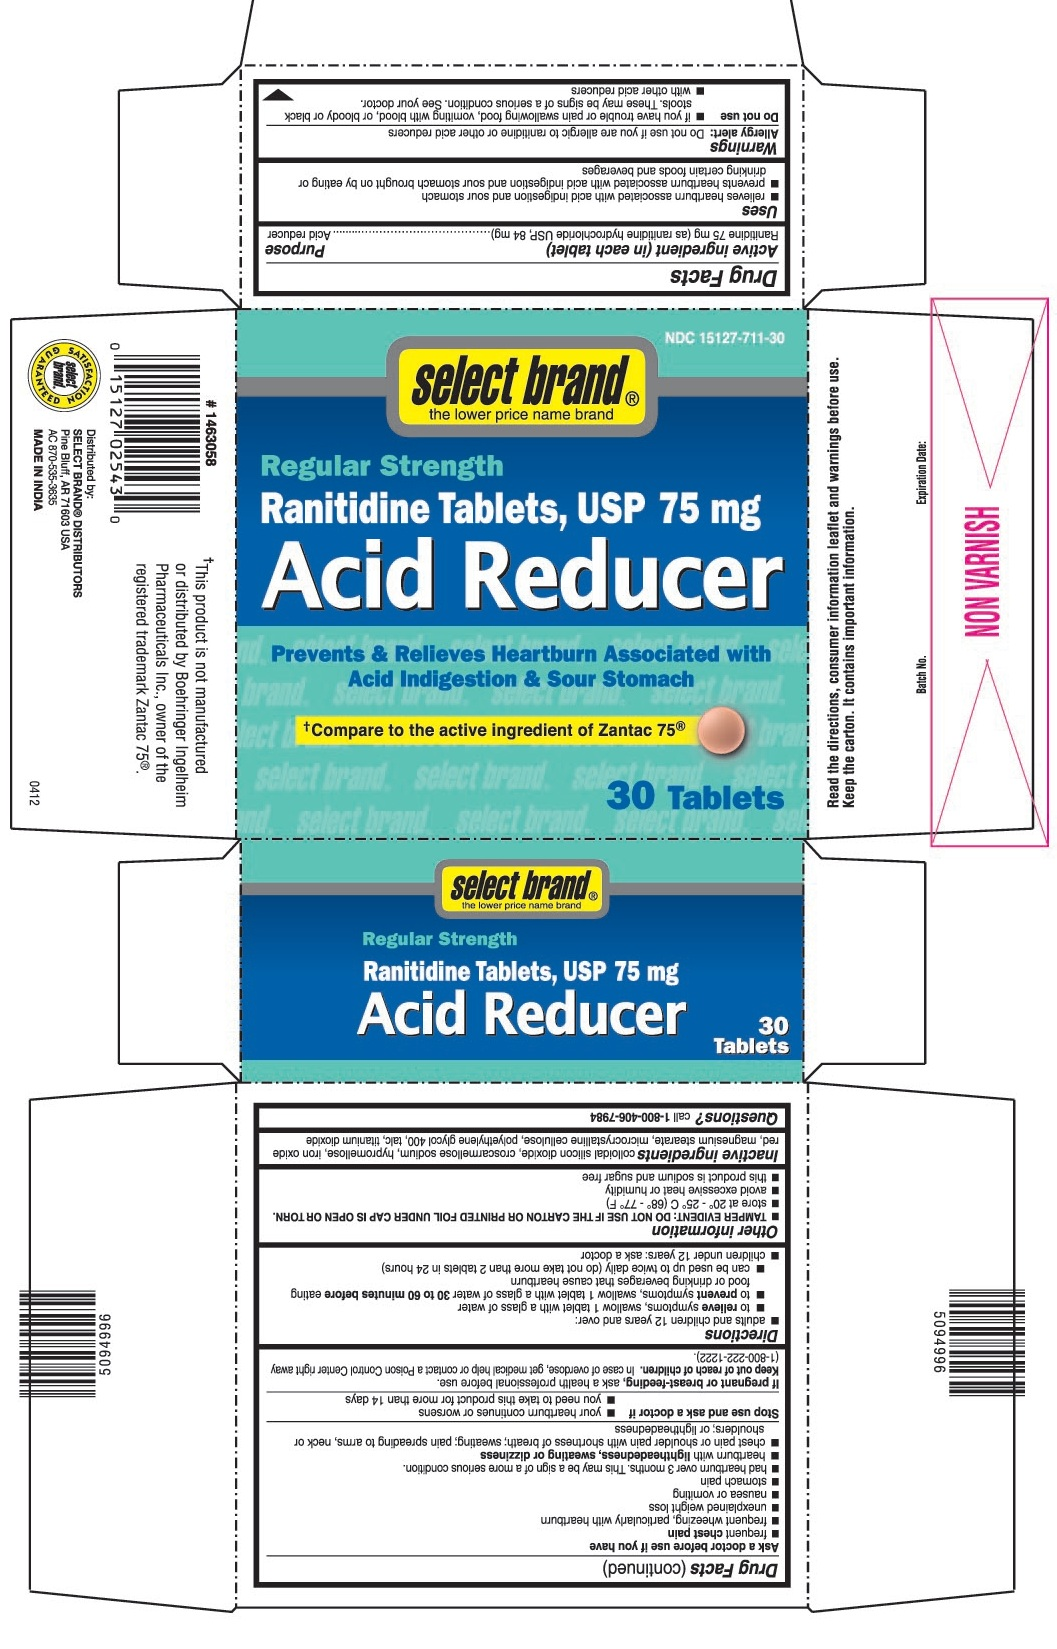 This is the 30 count bottle carton label for Select Brand Ranitidine tablets, USP 75 mg.